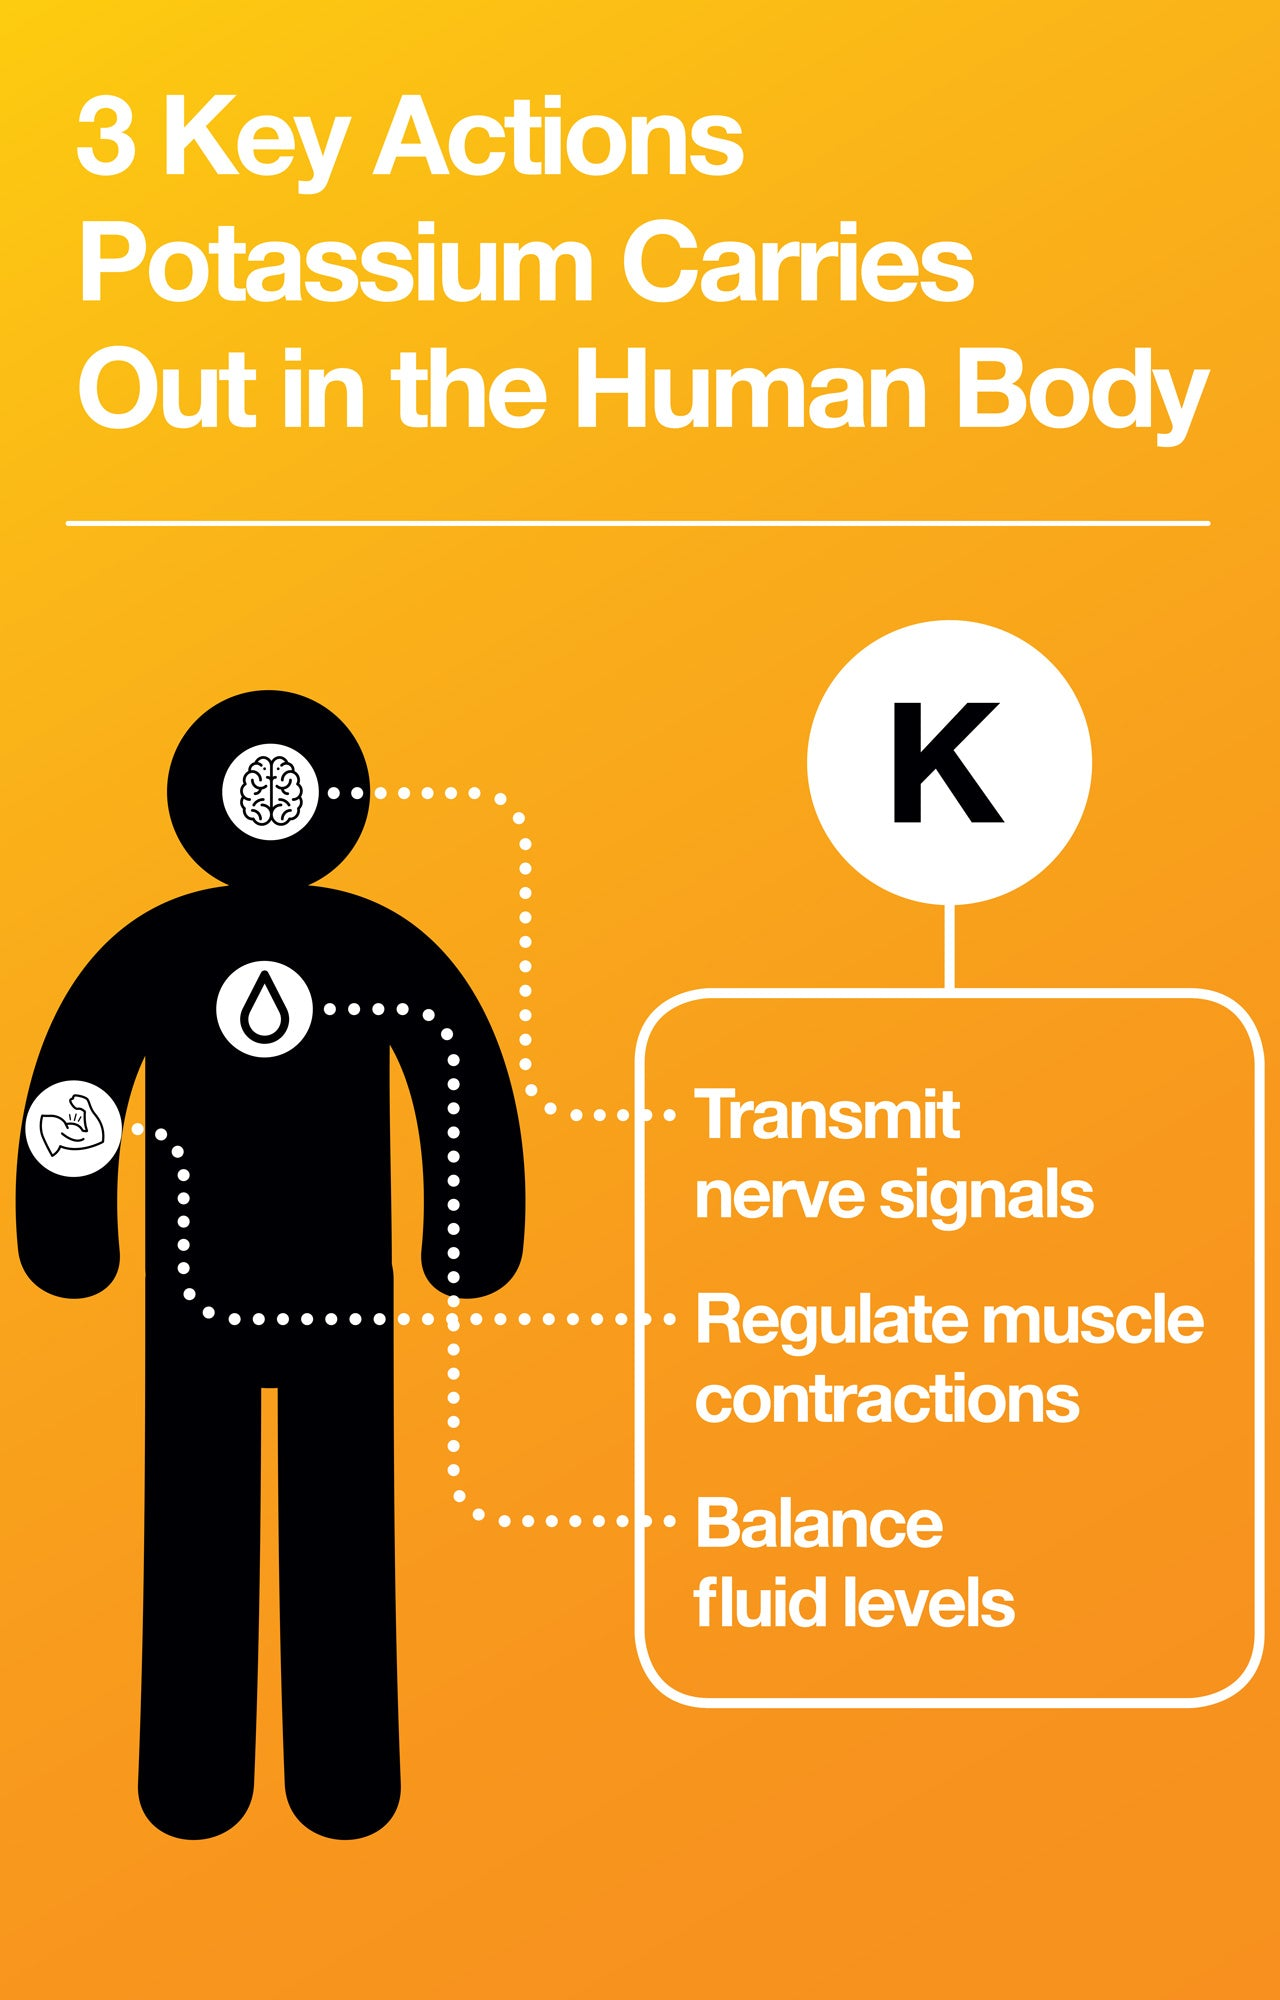 Learn what potassium is and why we need it.